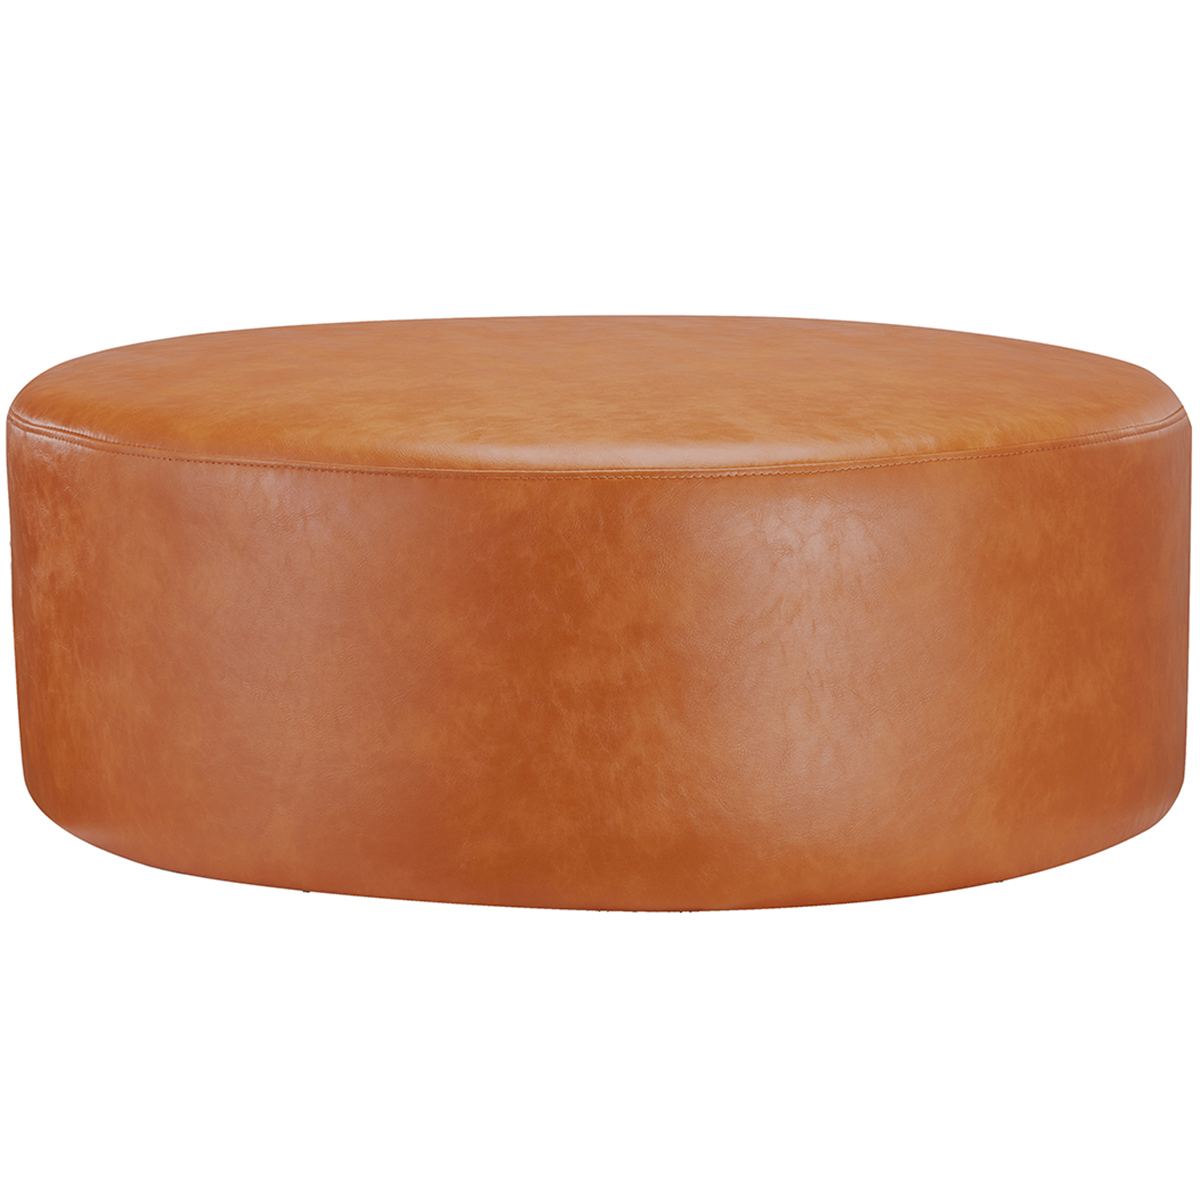 Oslo Home Large Round Victoria Faux Leather Ottoman Reviews Temple Webster